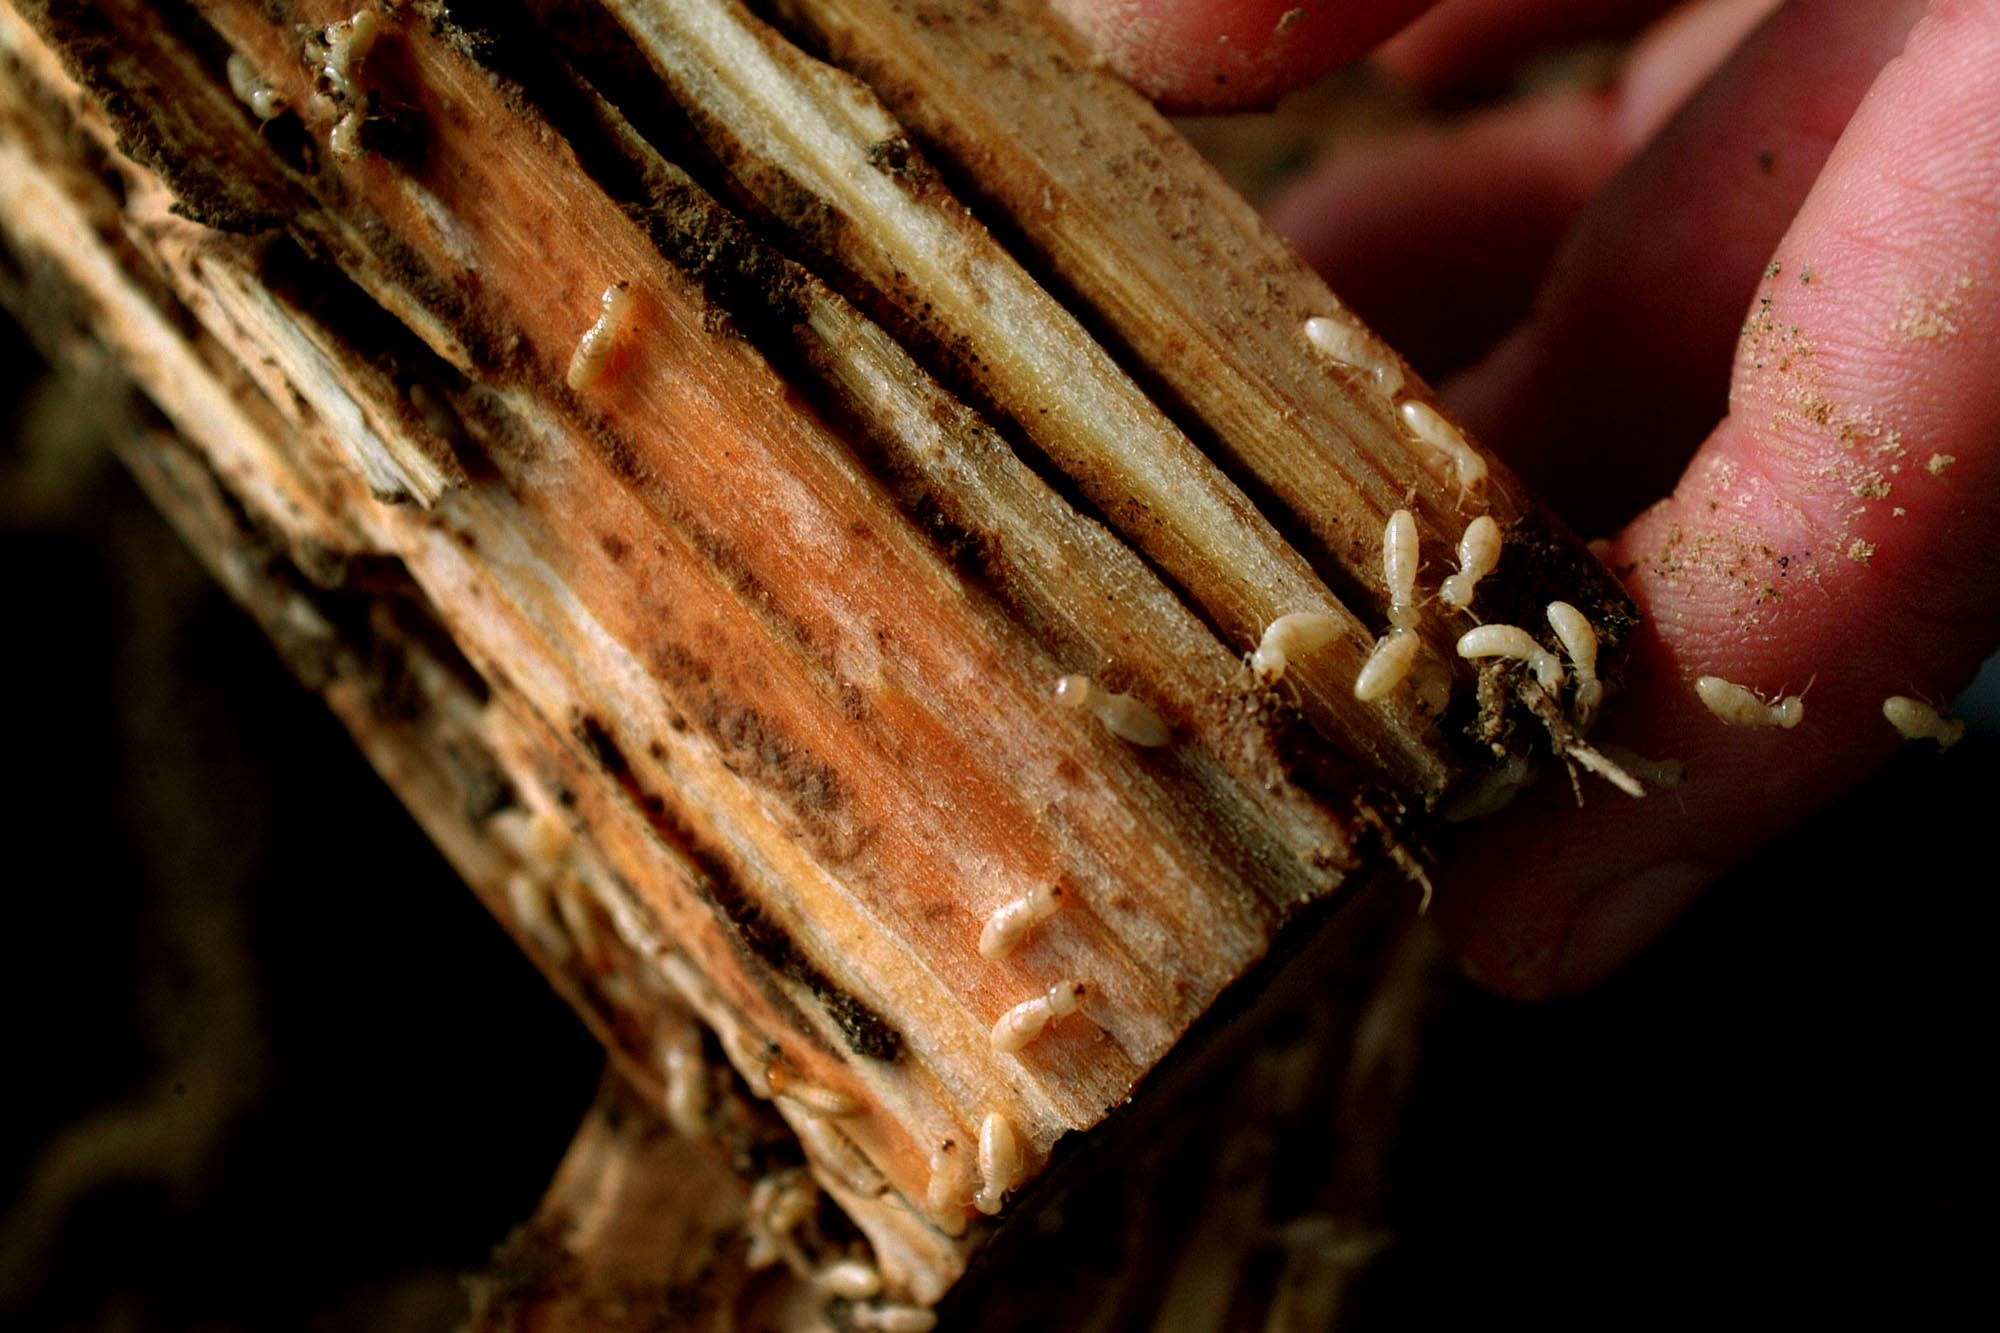 Formosan termite numbers rising in East Baton Rouge and Louisiana